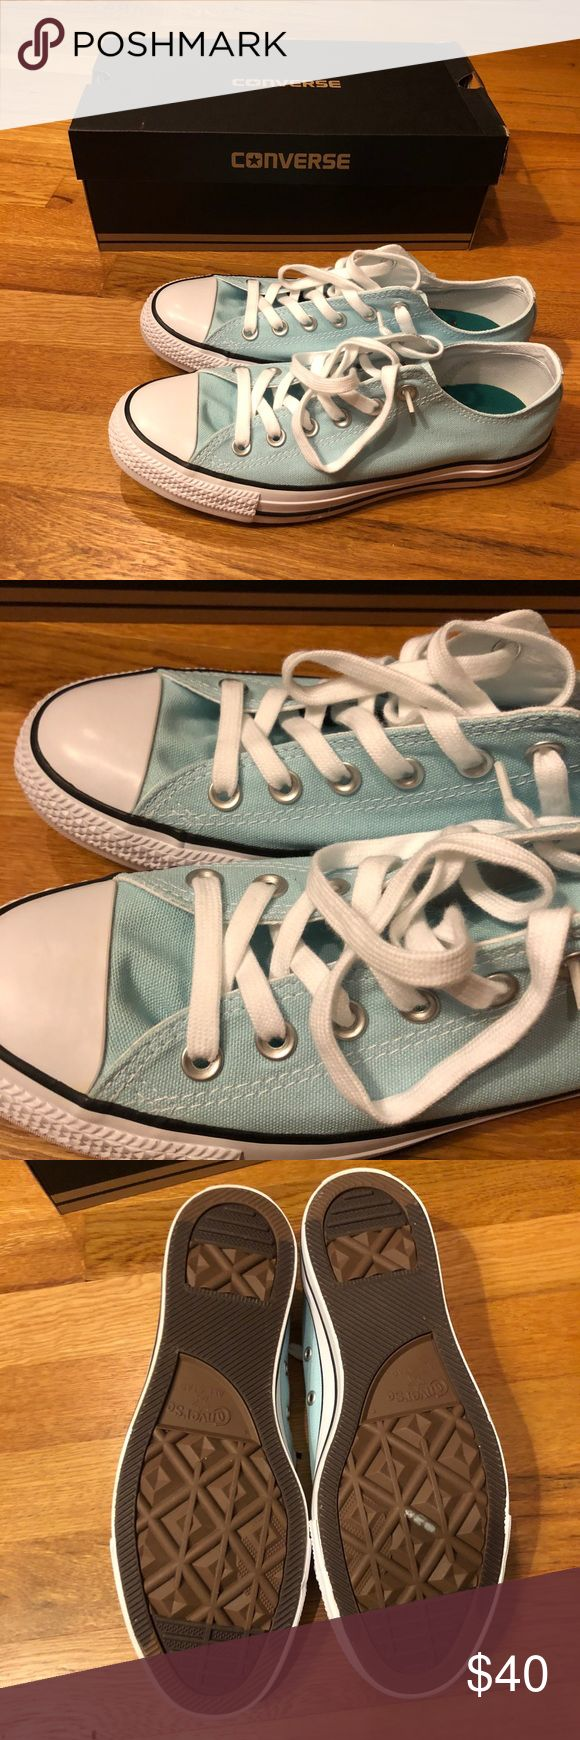 New in box. Converse all star low sneakers. New in box. Converse low top all*star sneakers. They have a double tongue (see last pic). Women's size 9. Color is 'motel pool'. Price firm. Converse Shoes Sneakers